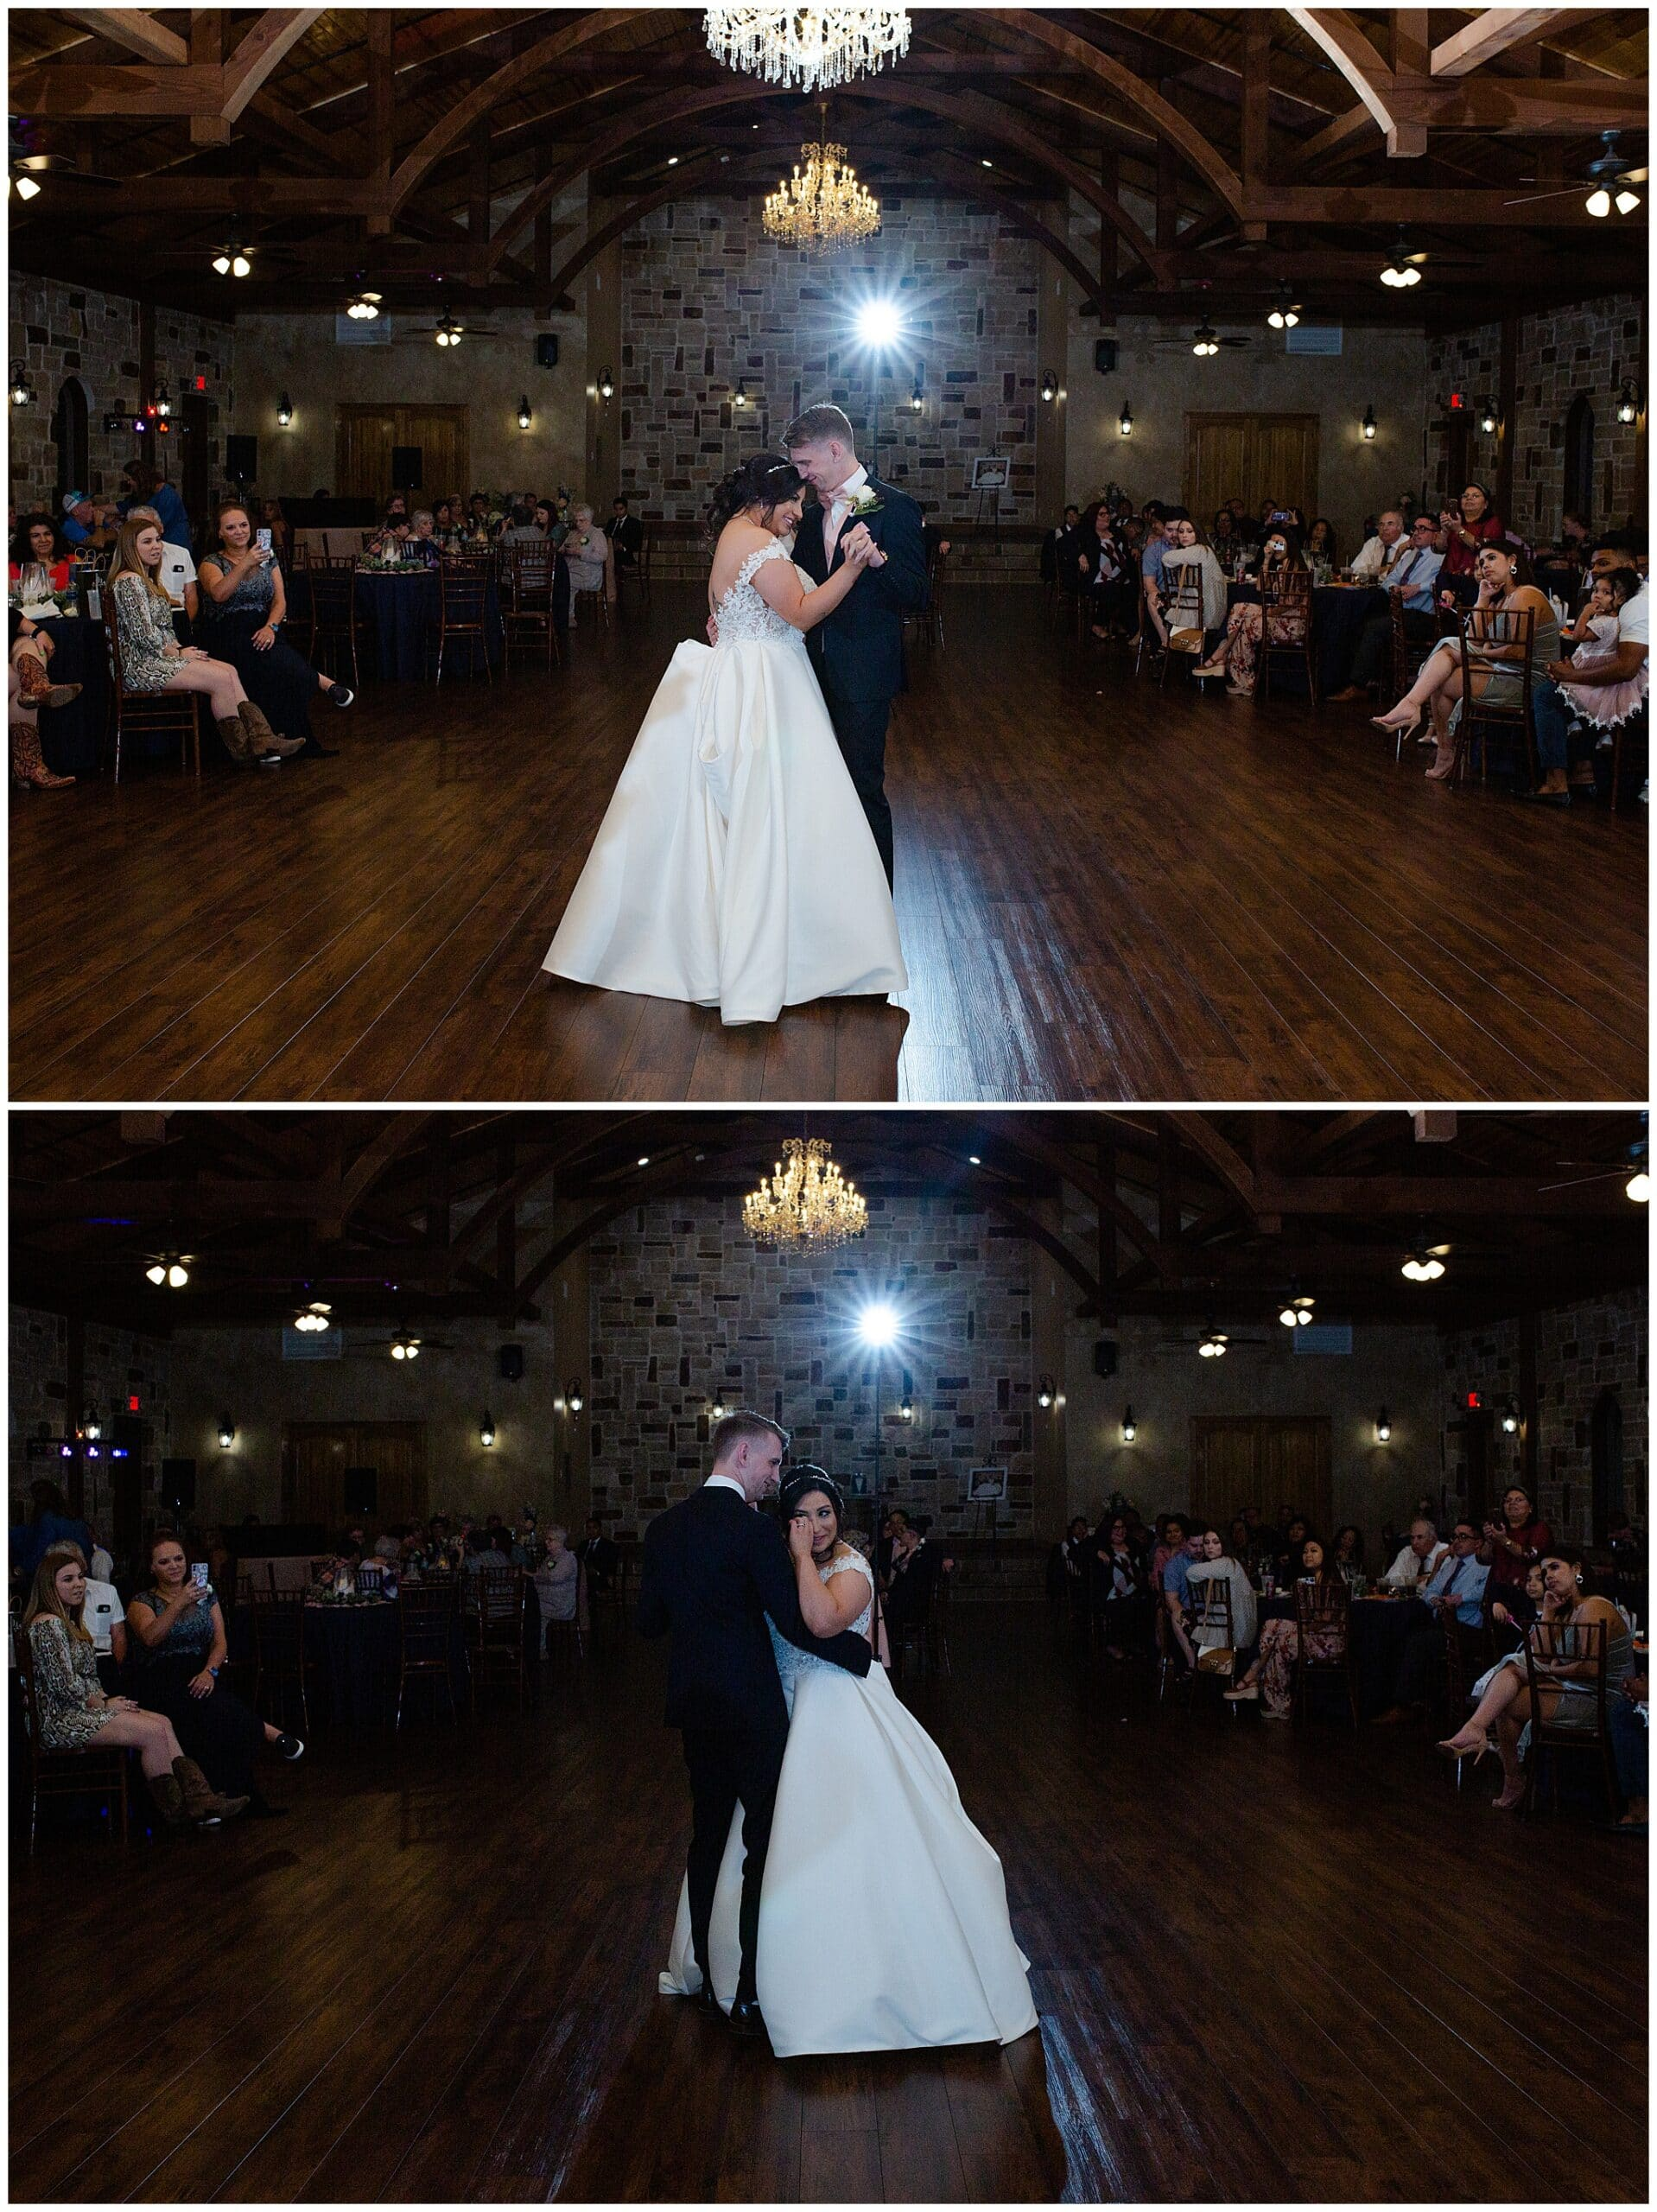 bride and groom first dance at Bridal Oaks in Cypress Texas by Houston wedding photographer Swish and Click Photography